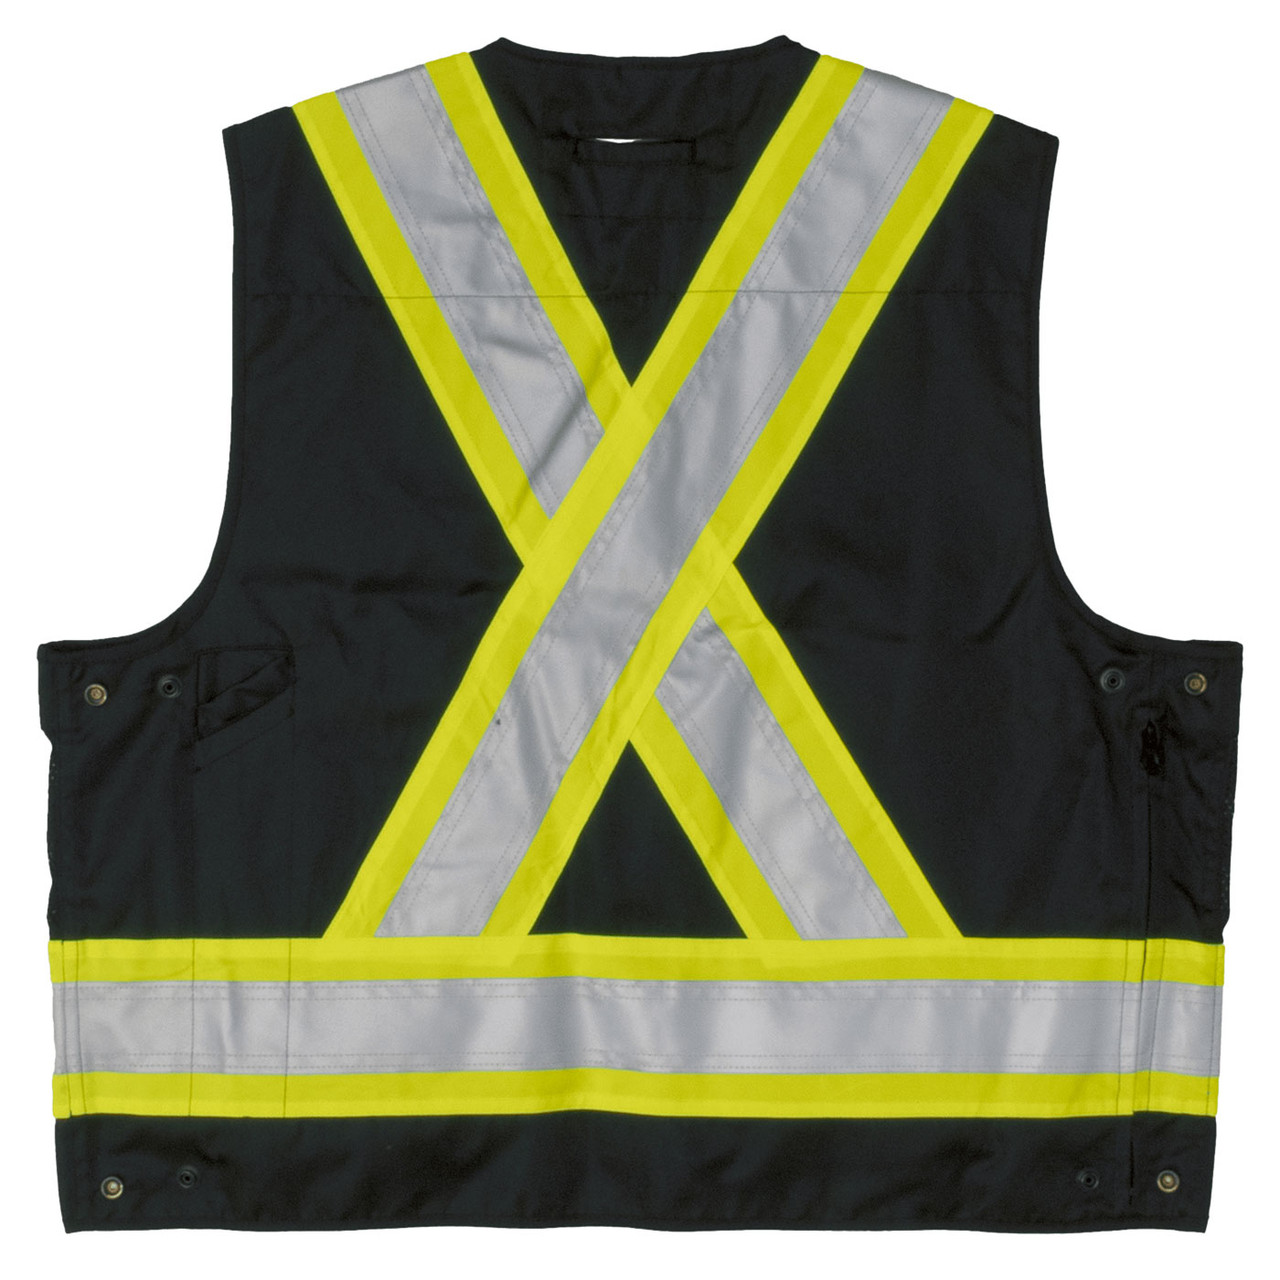 c69d54b7dca9a Work King Safety Class 1 Enhanced Vis Black Two-Tone X-Back Safety Vest